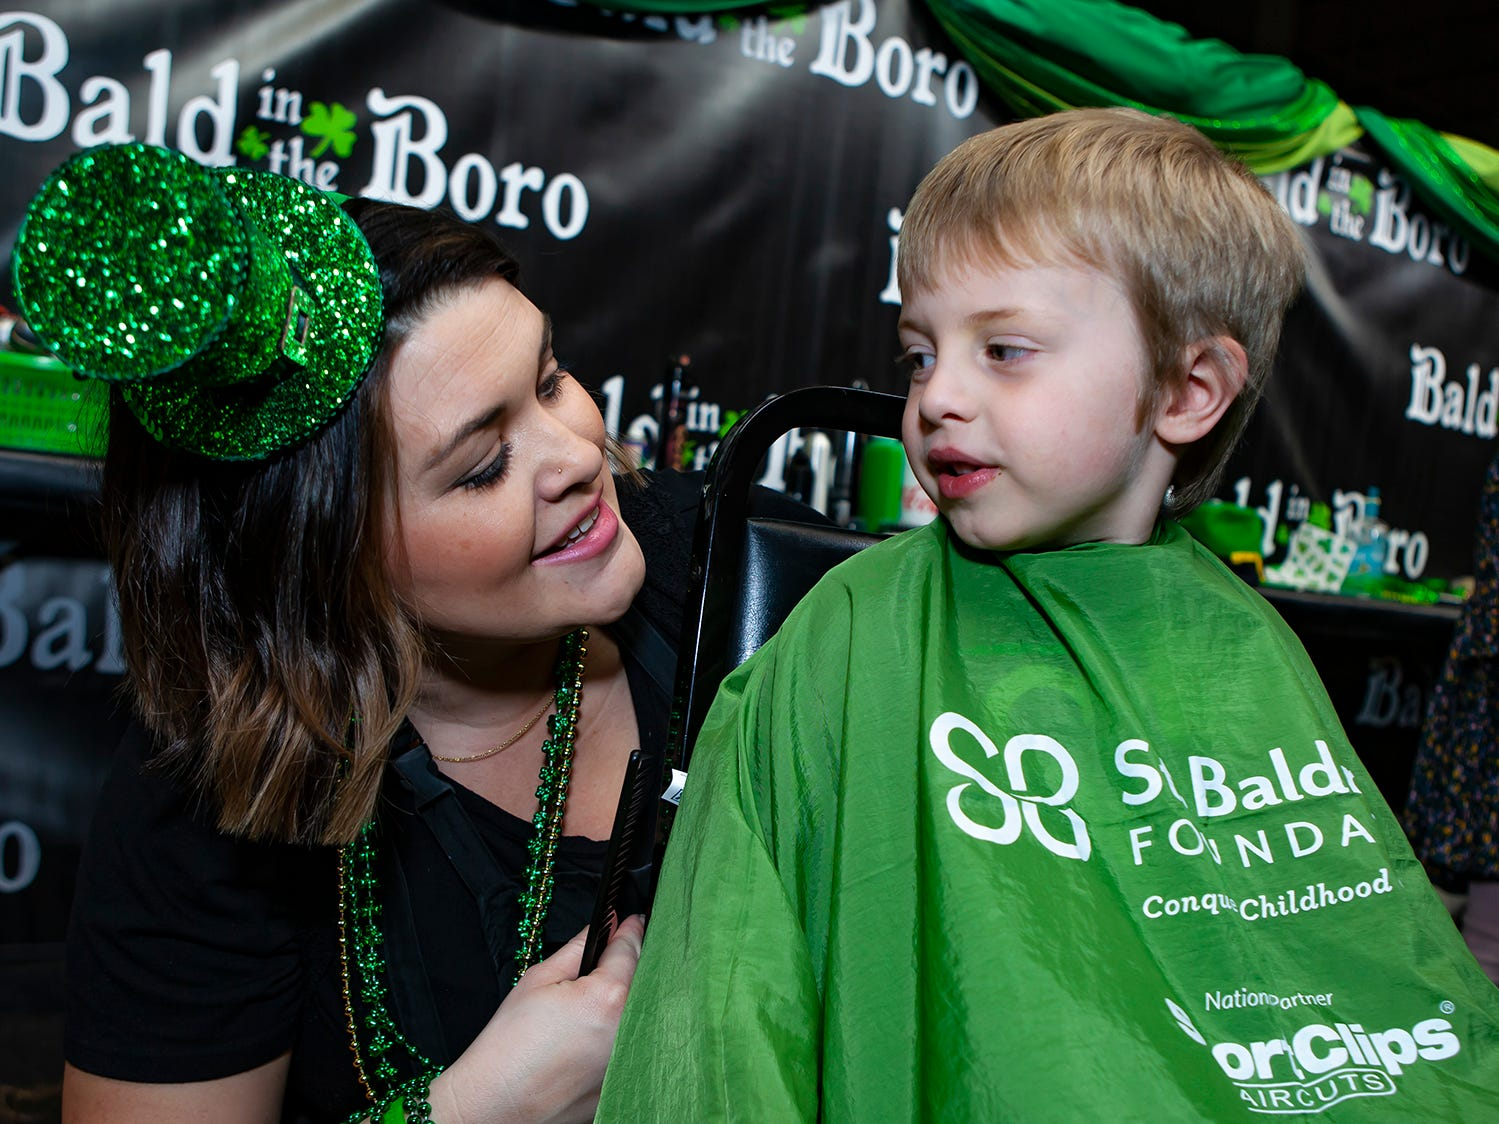 Brittnie Bern with Beehive salon chats with a boy before cutting his hair at the ninth annual Bald in the Boro fundraiser, held Friday, March 15, 2019 at Lanes, Trains and Automobiles in Murfreesboro.